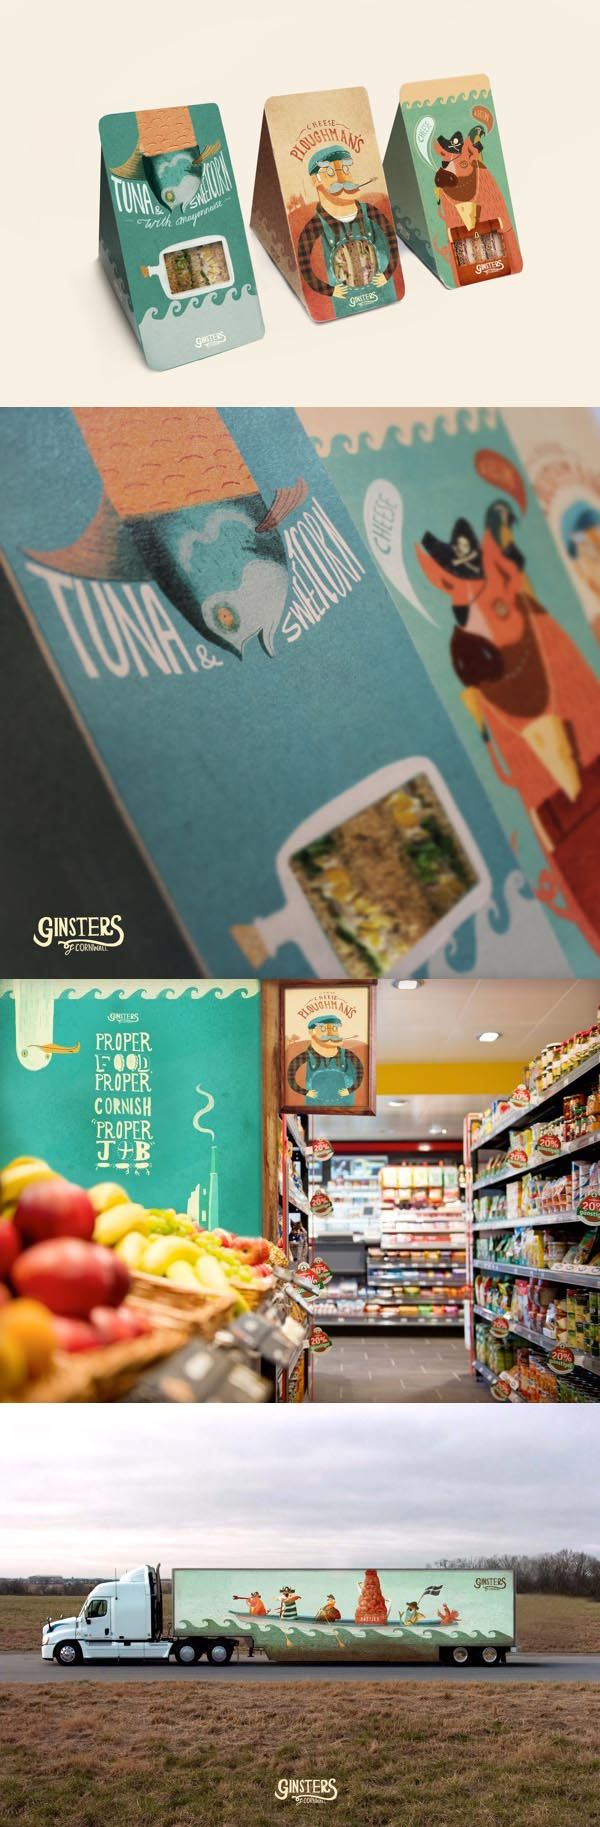 Ginsters Reinterpretation #identity #packaging #branding #marketing PD